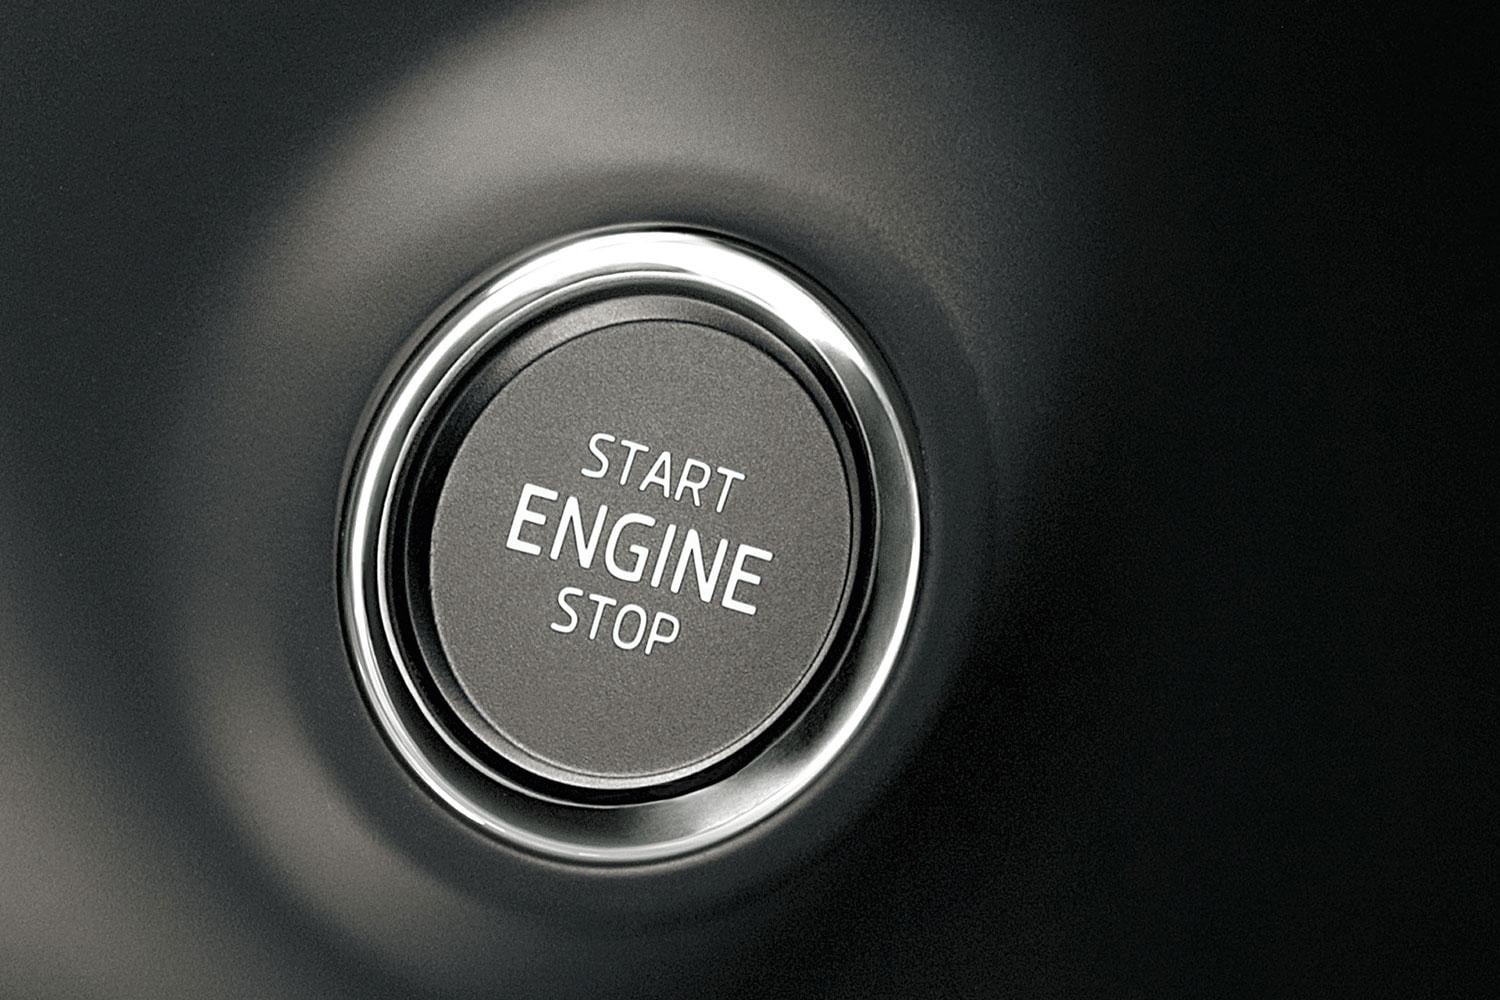 Dozens of Deaths Linked to Keyless Ignition From Engines